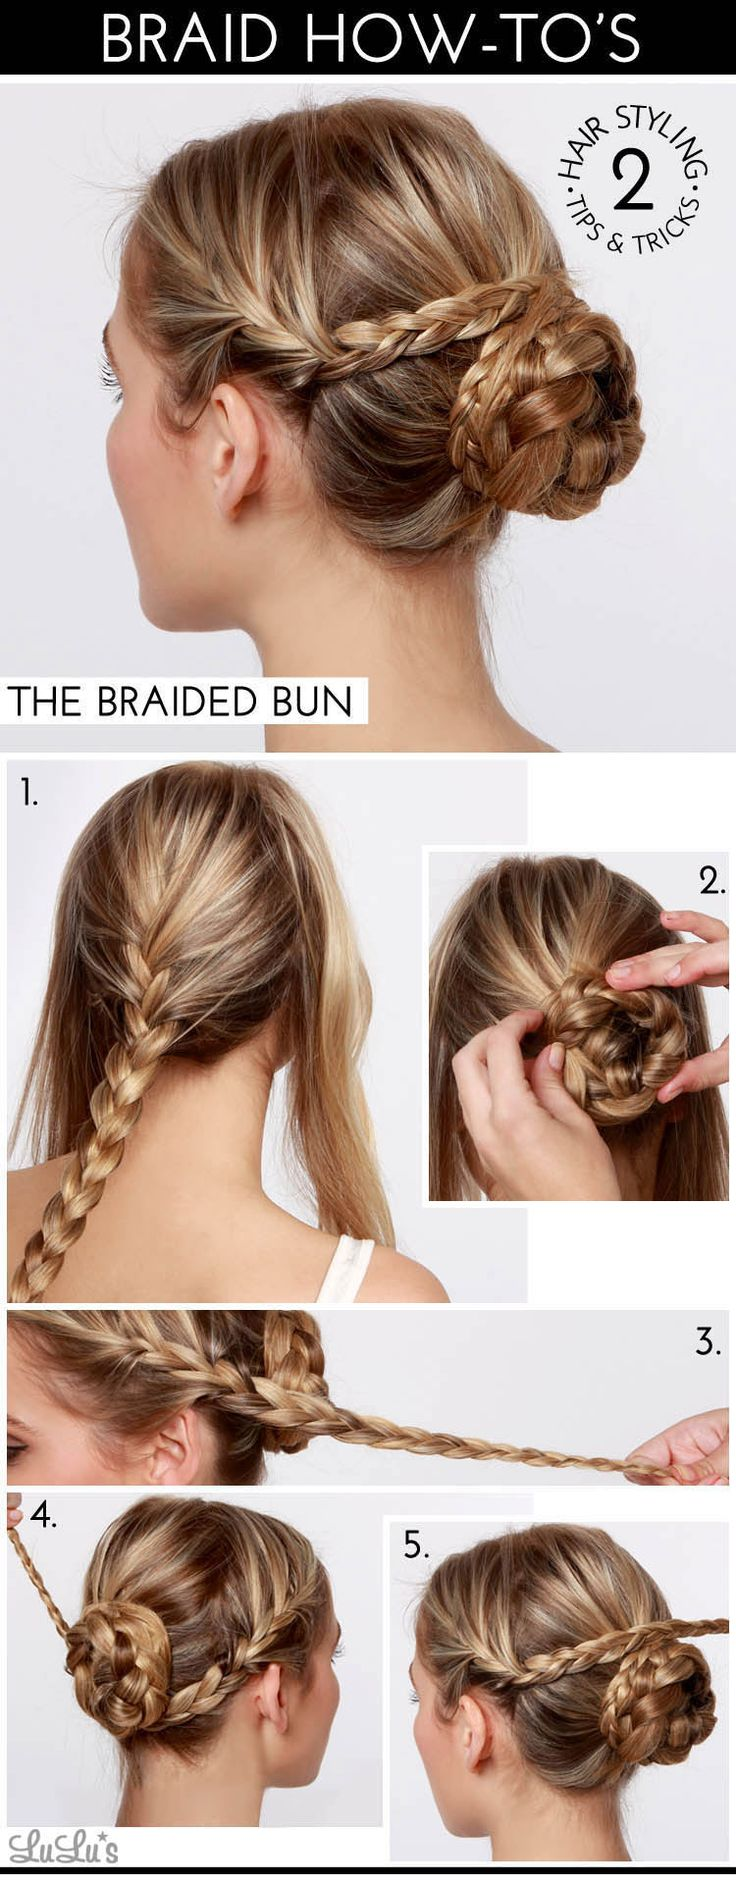 Miraculous 1000 Images About Simple Hairstyles On Pinterest Chignons Short Hairstyles Gunalazisus